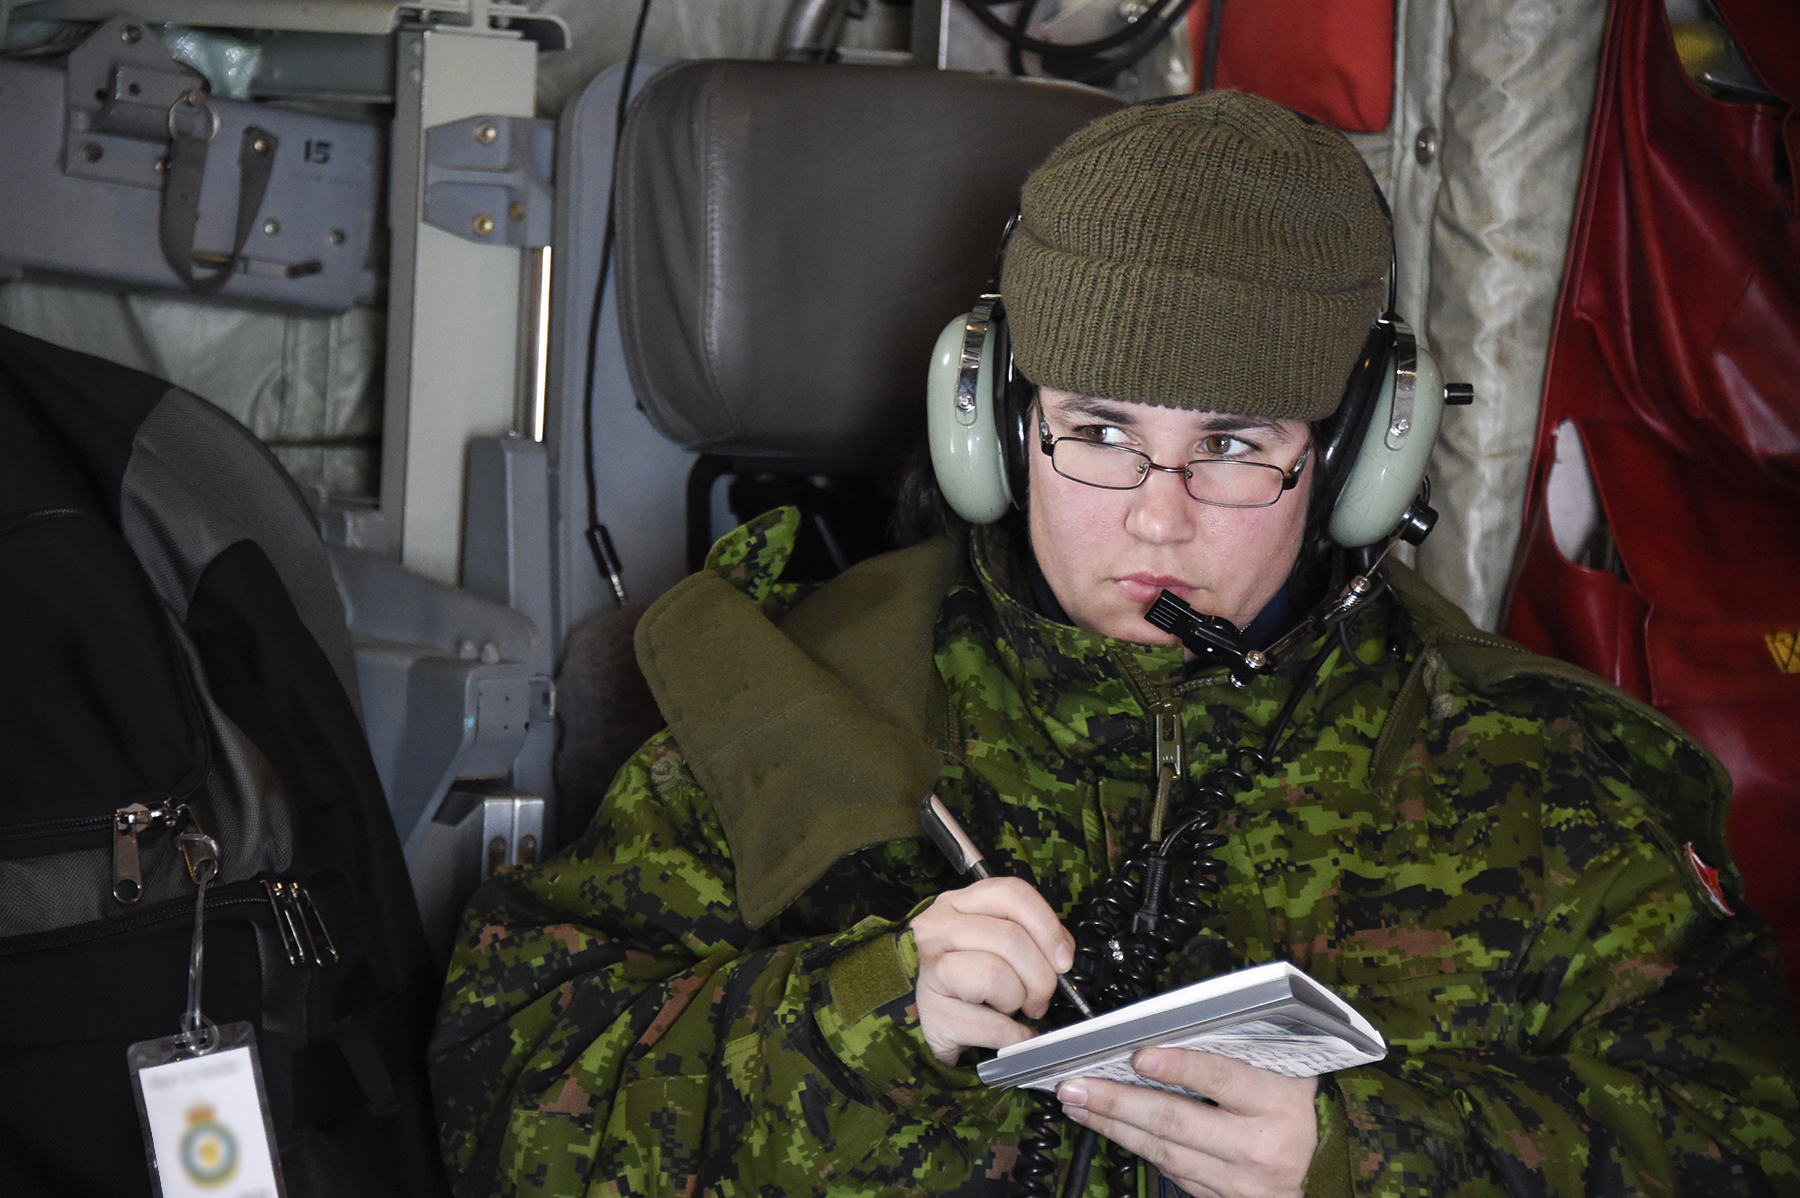 A woman wearing a disruptive pattern uniform, a tuque and noise-cancelling headphones sits in a cargo aircraft taking notes.